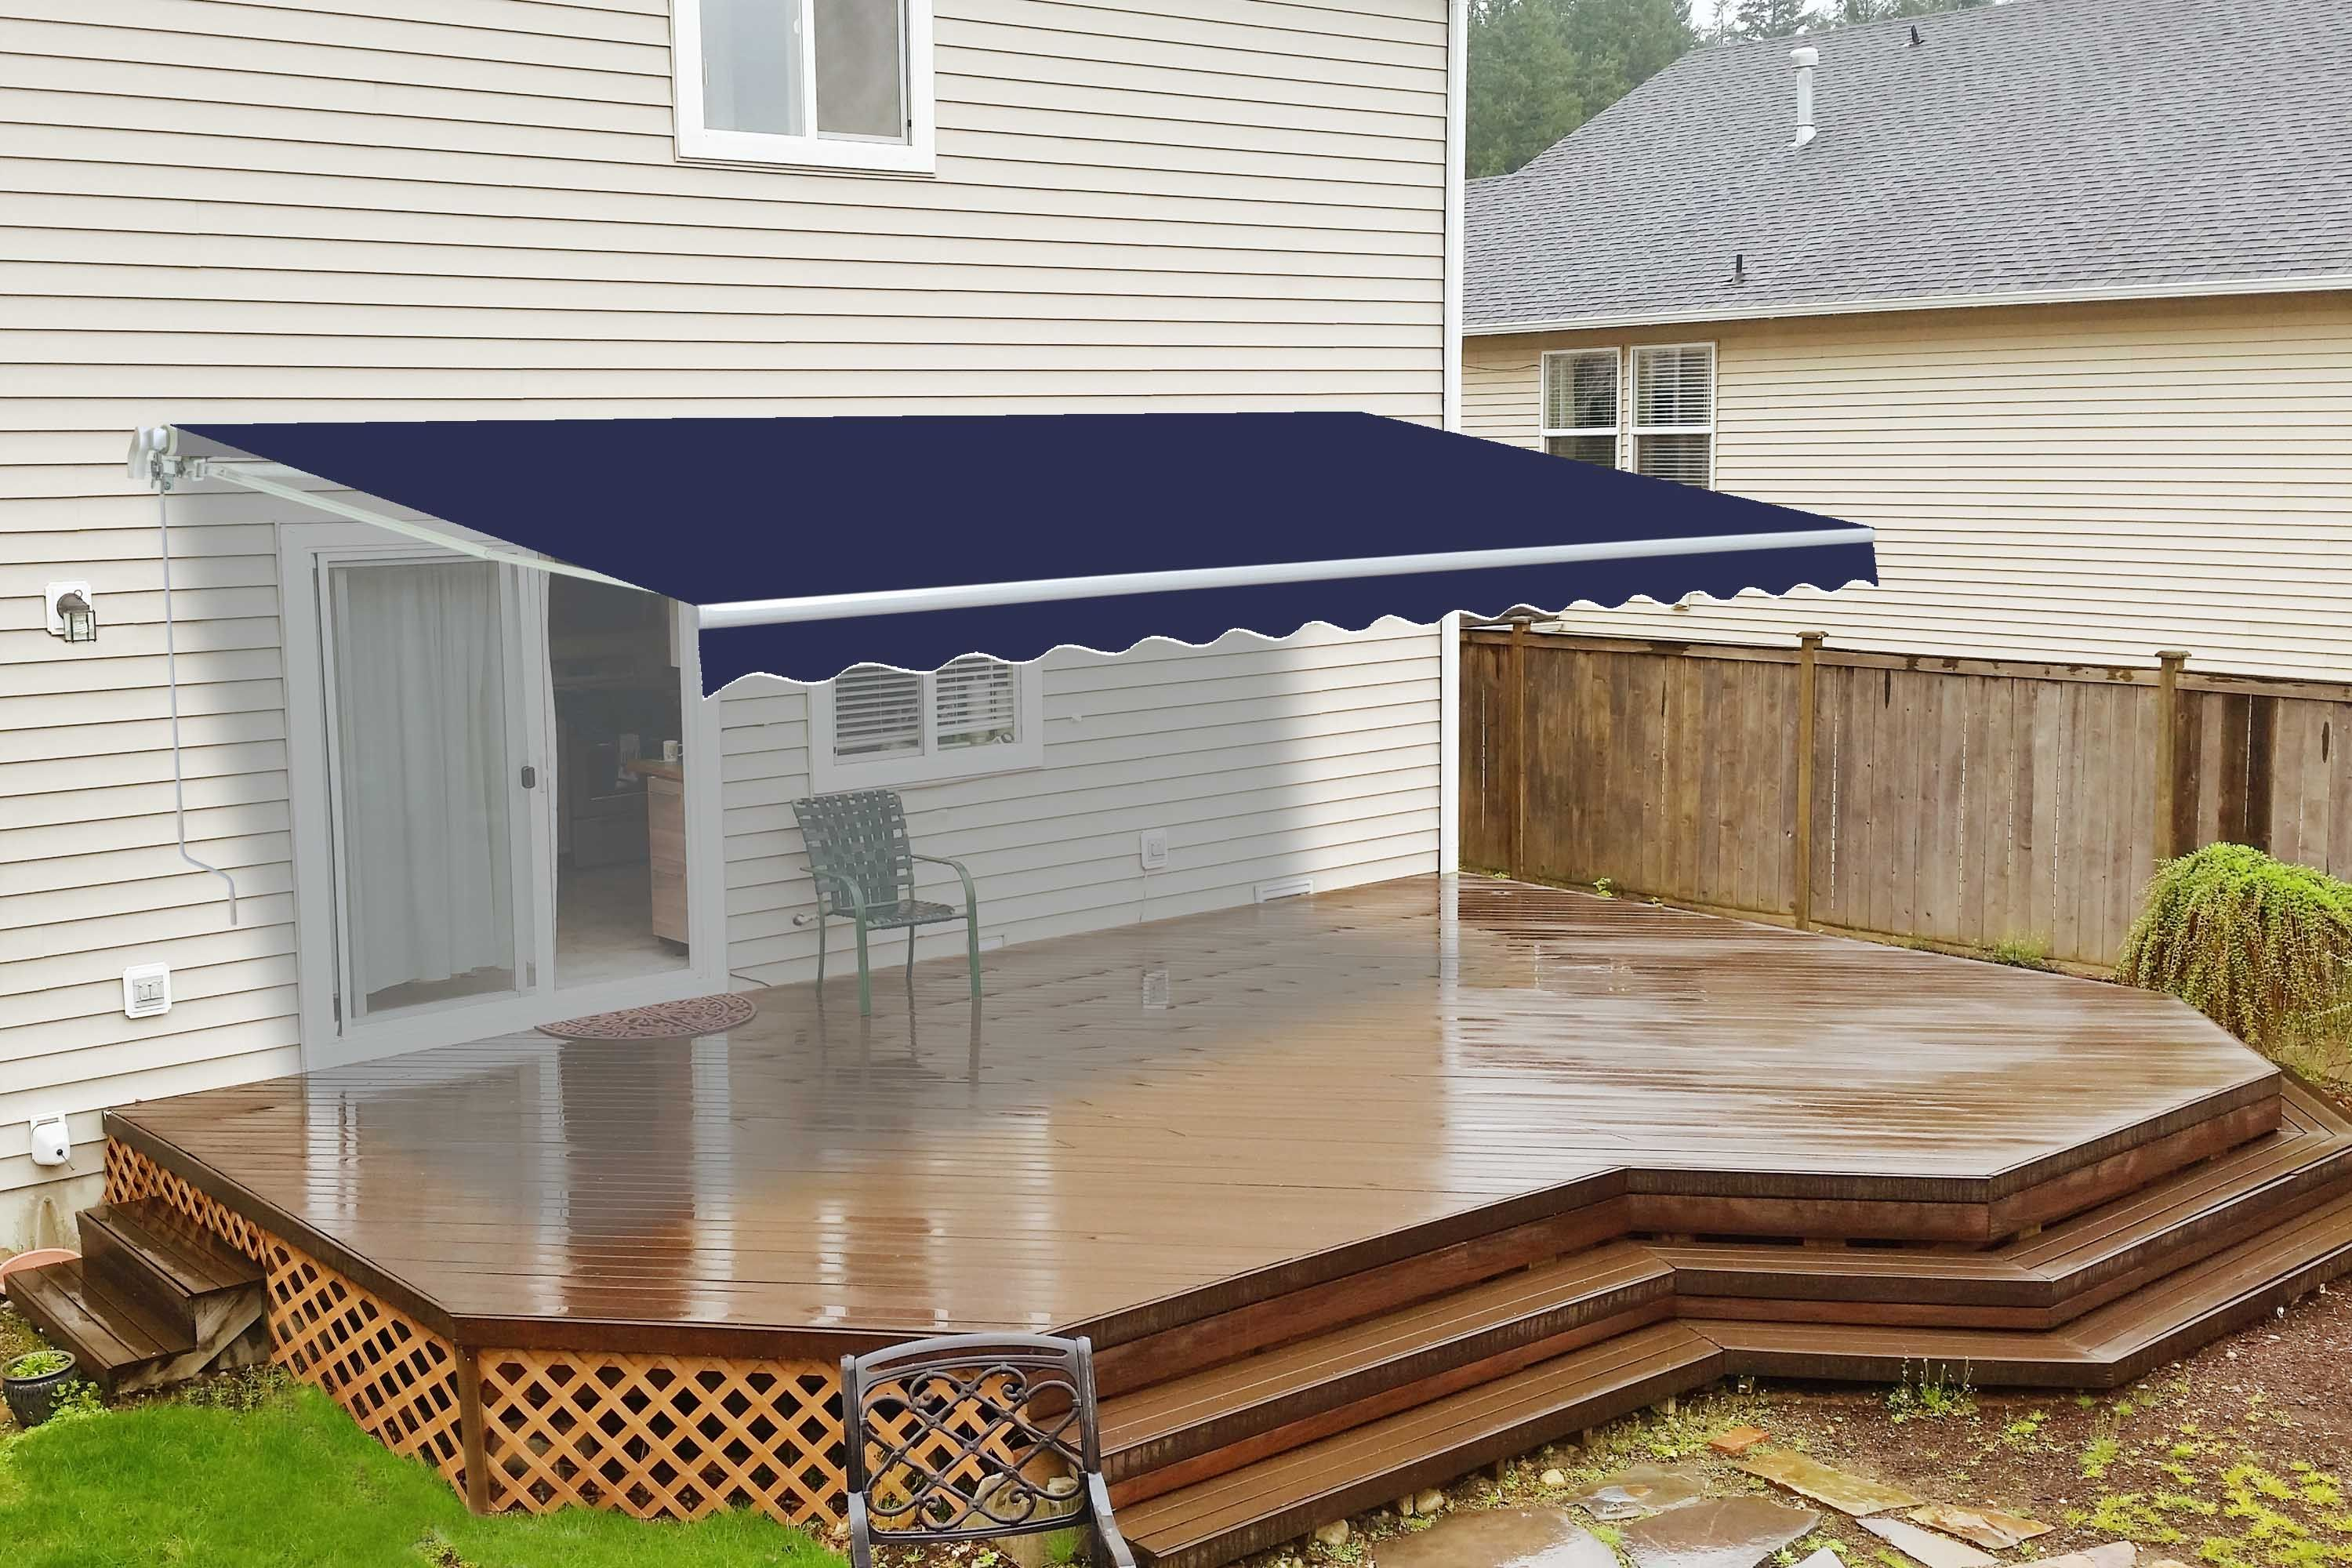 Retractable Patio Awning 12x10 Feet Blue Aleko Patio Awning Patio Sun Shades Small Backyard